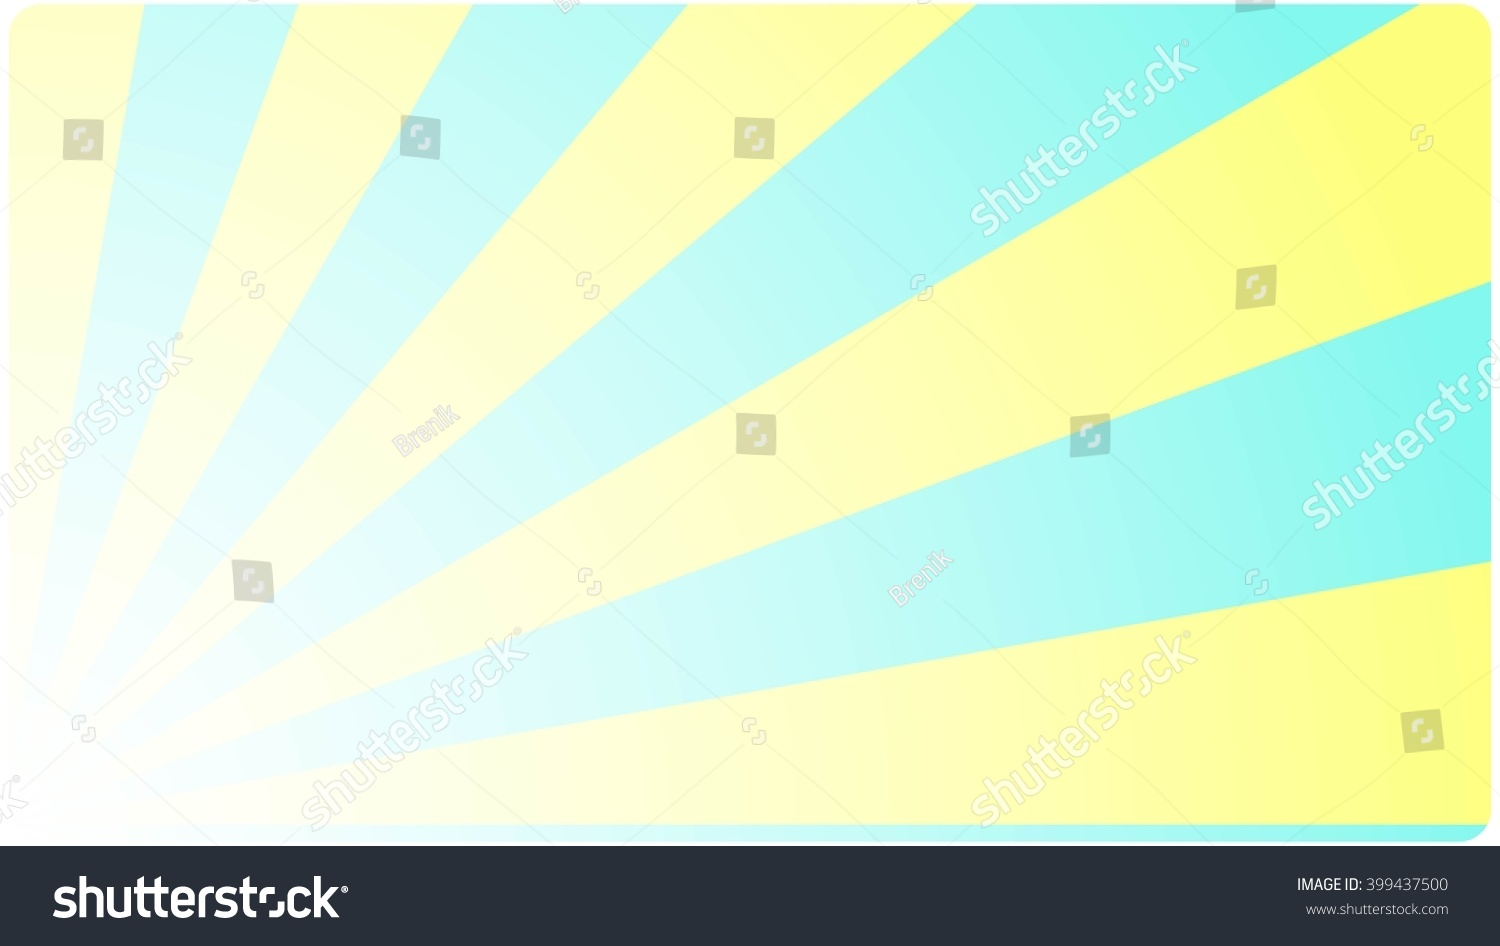 Business Card Visiting Calling Template With Abstract Geometric Design Rays Background